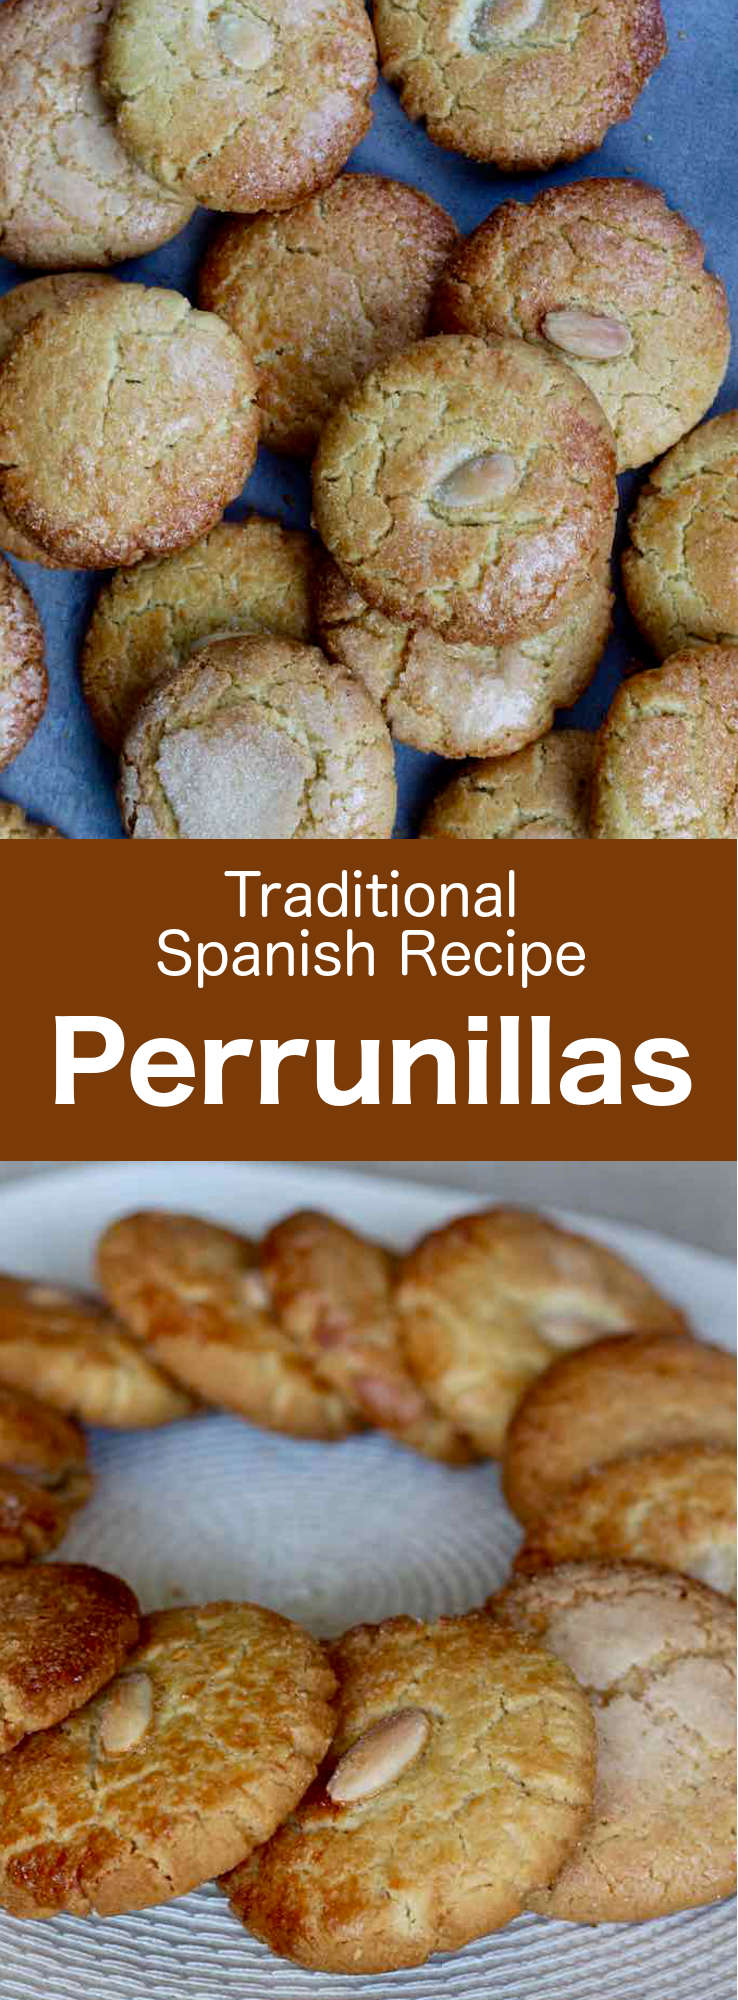 Perrunillas are the most popular shortbread biscuits from the region of Extremadura in Spain. They are also very popular in Castile-Leon and Andalusia. #SpanishCuisine #Spain #SpanishRecipe #SpanishFood #WorldCuisine #196flavors